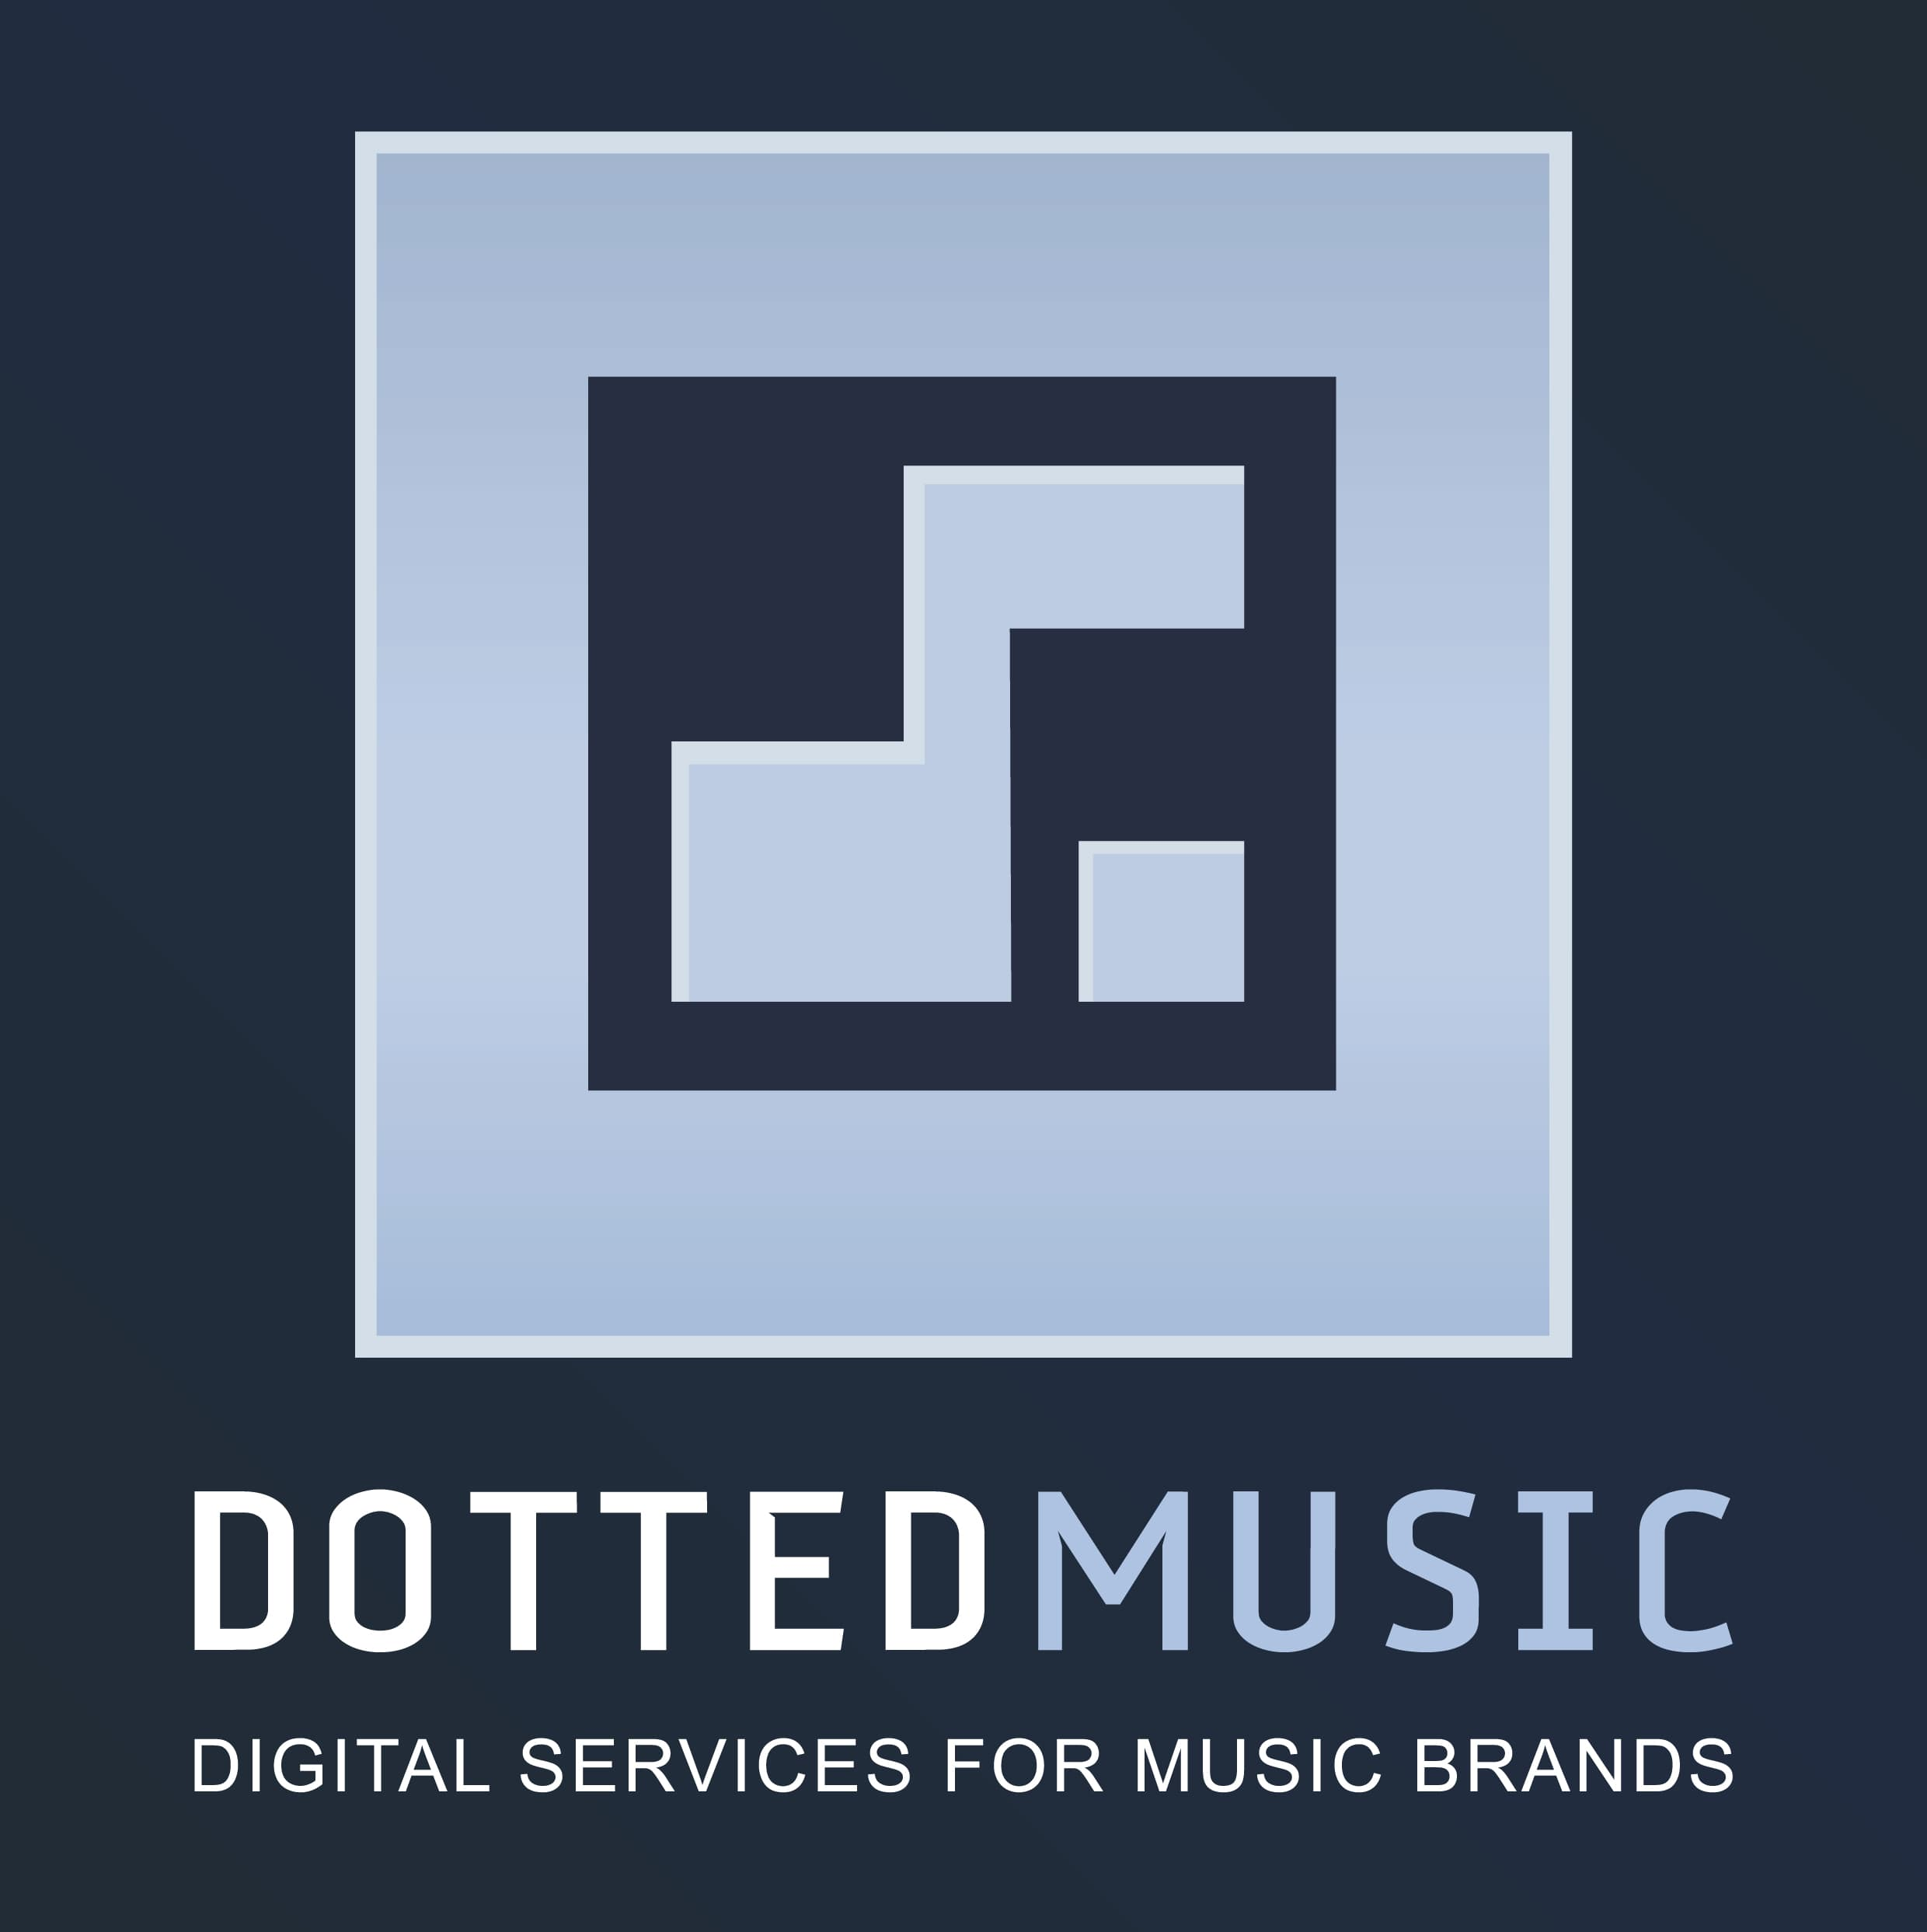 Dotted Music